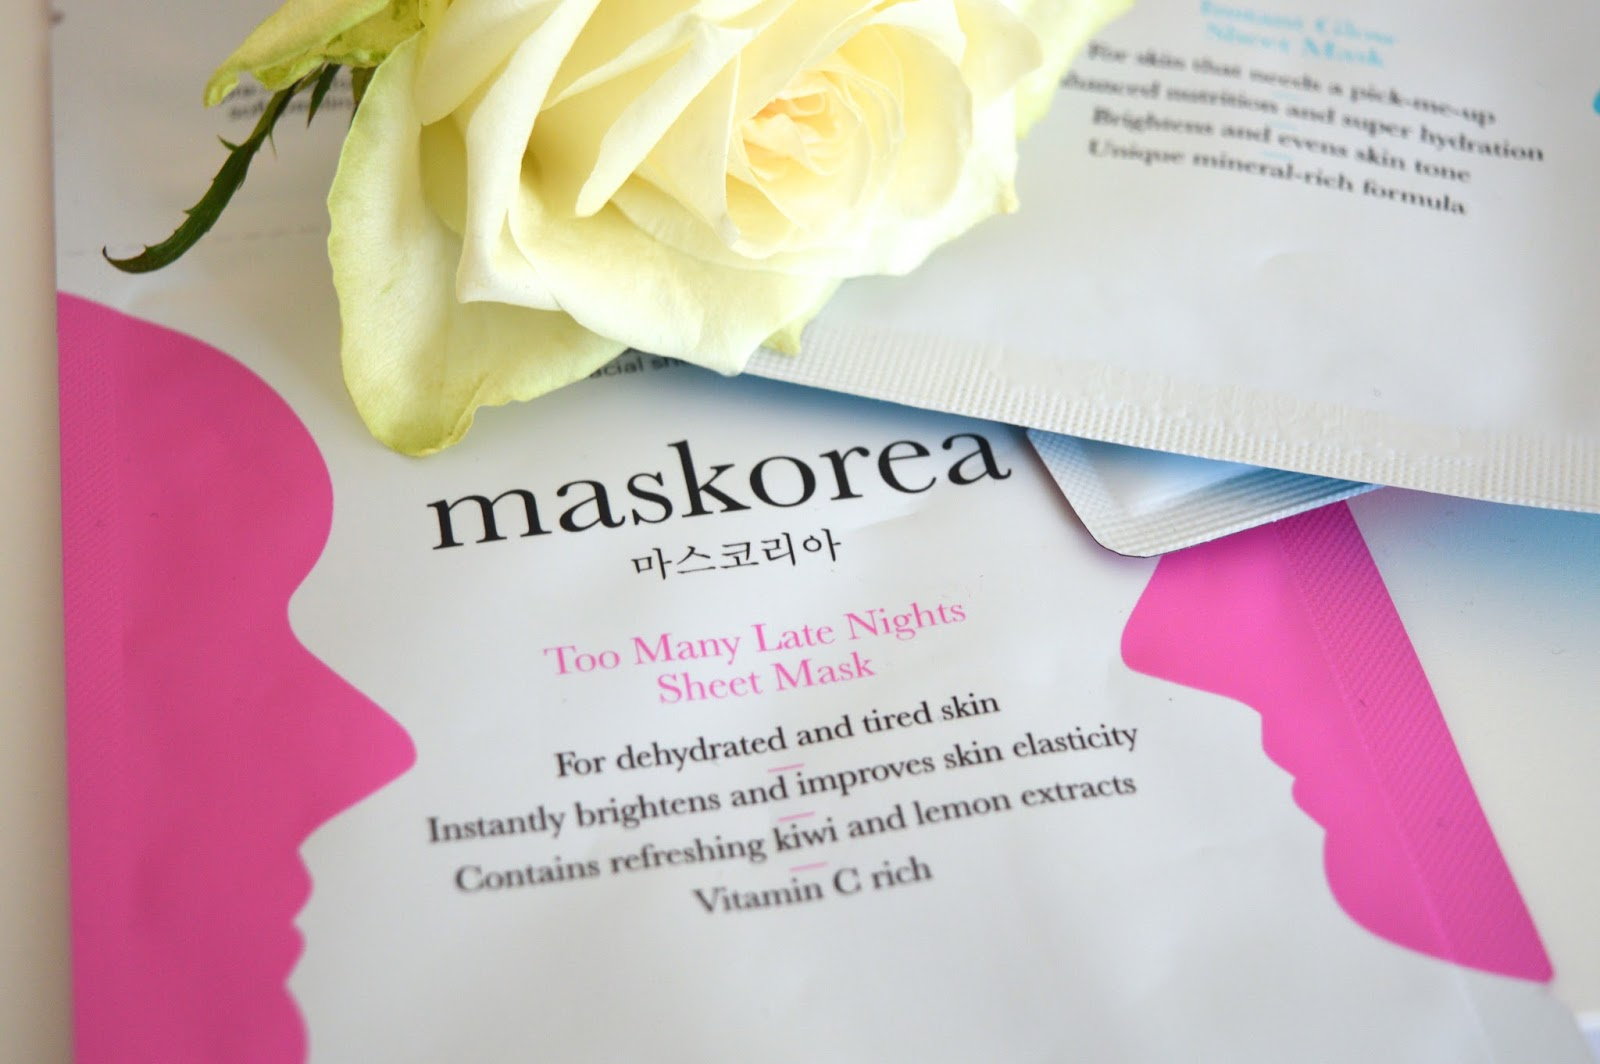 Maskorea Instant Glow Mask Review, Maskorea sheet mask review, beauty bloggers UK, UK beauty blog